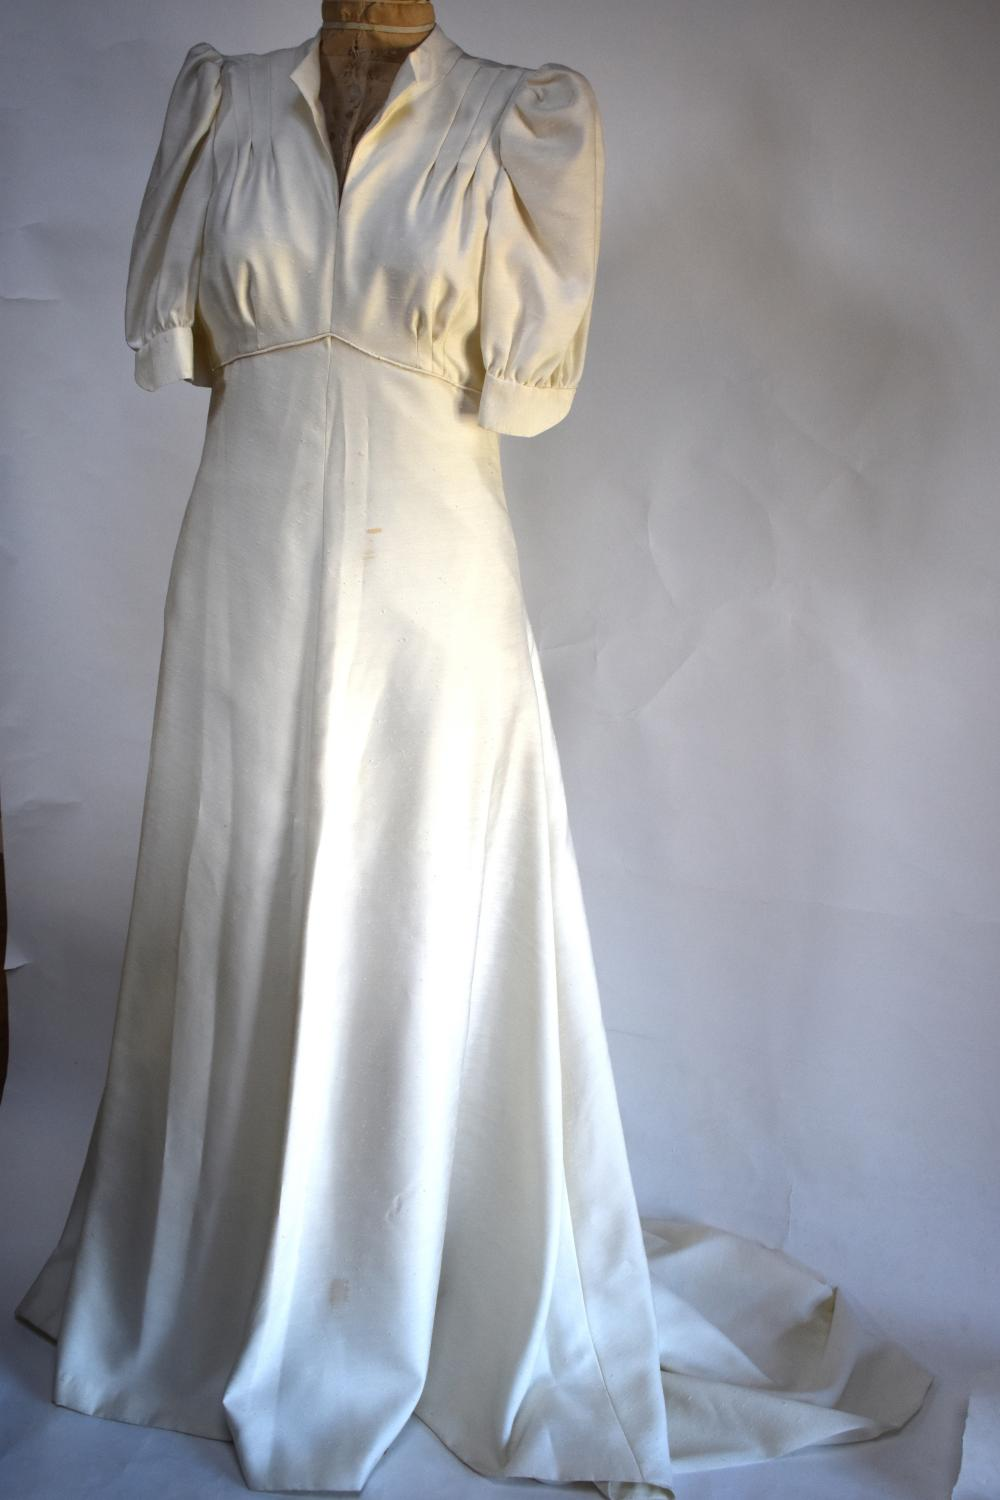 Wedding dress, Christening gowns and infants clothing